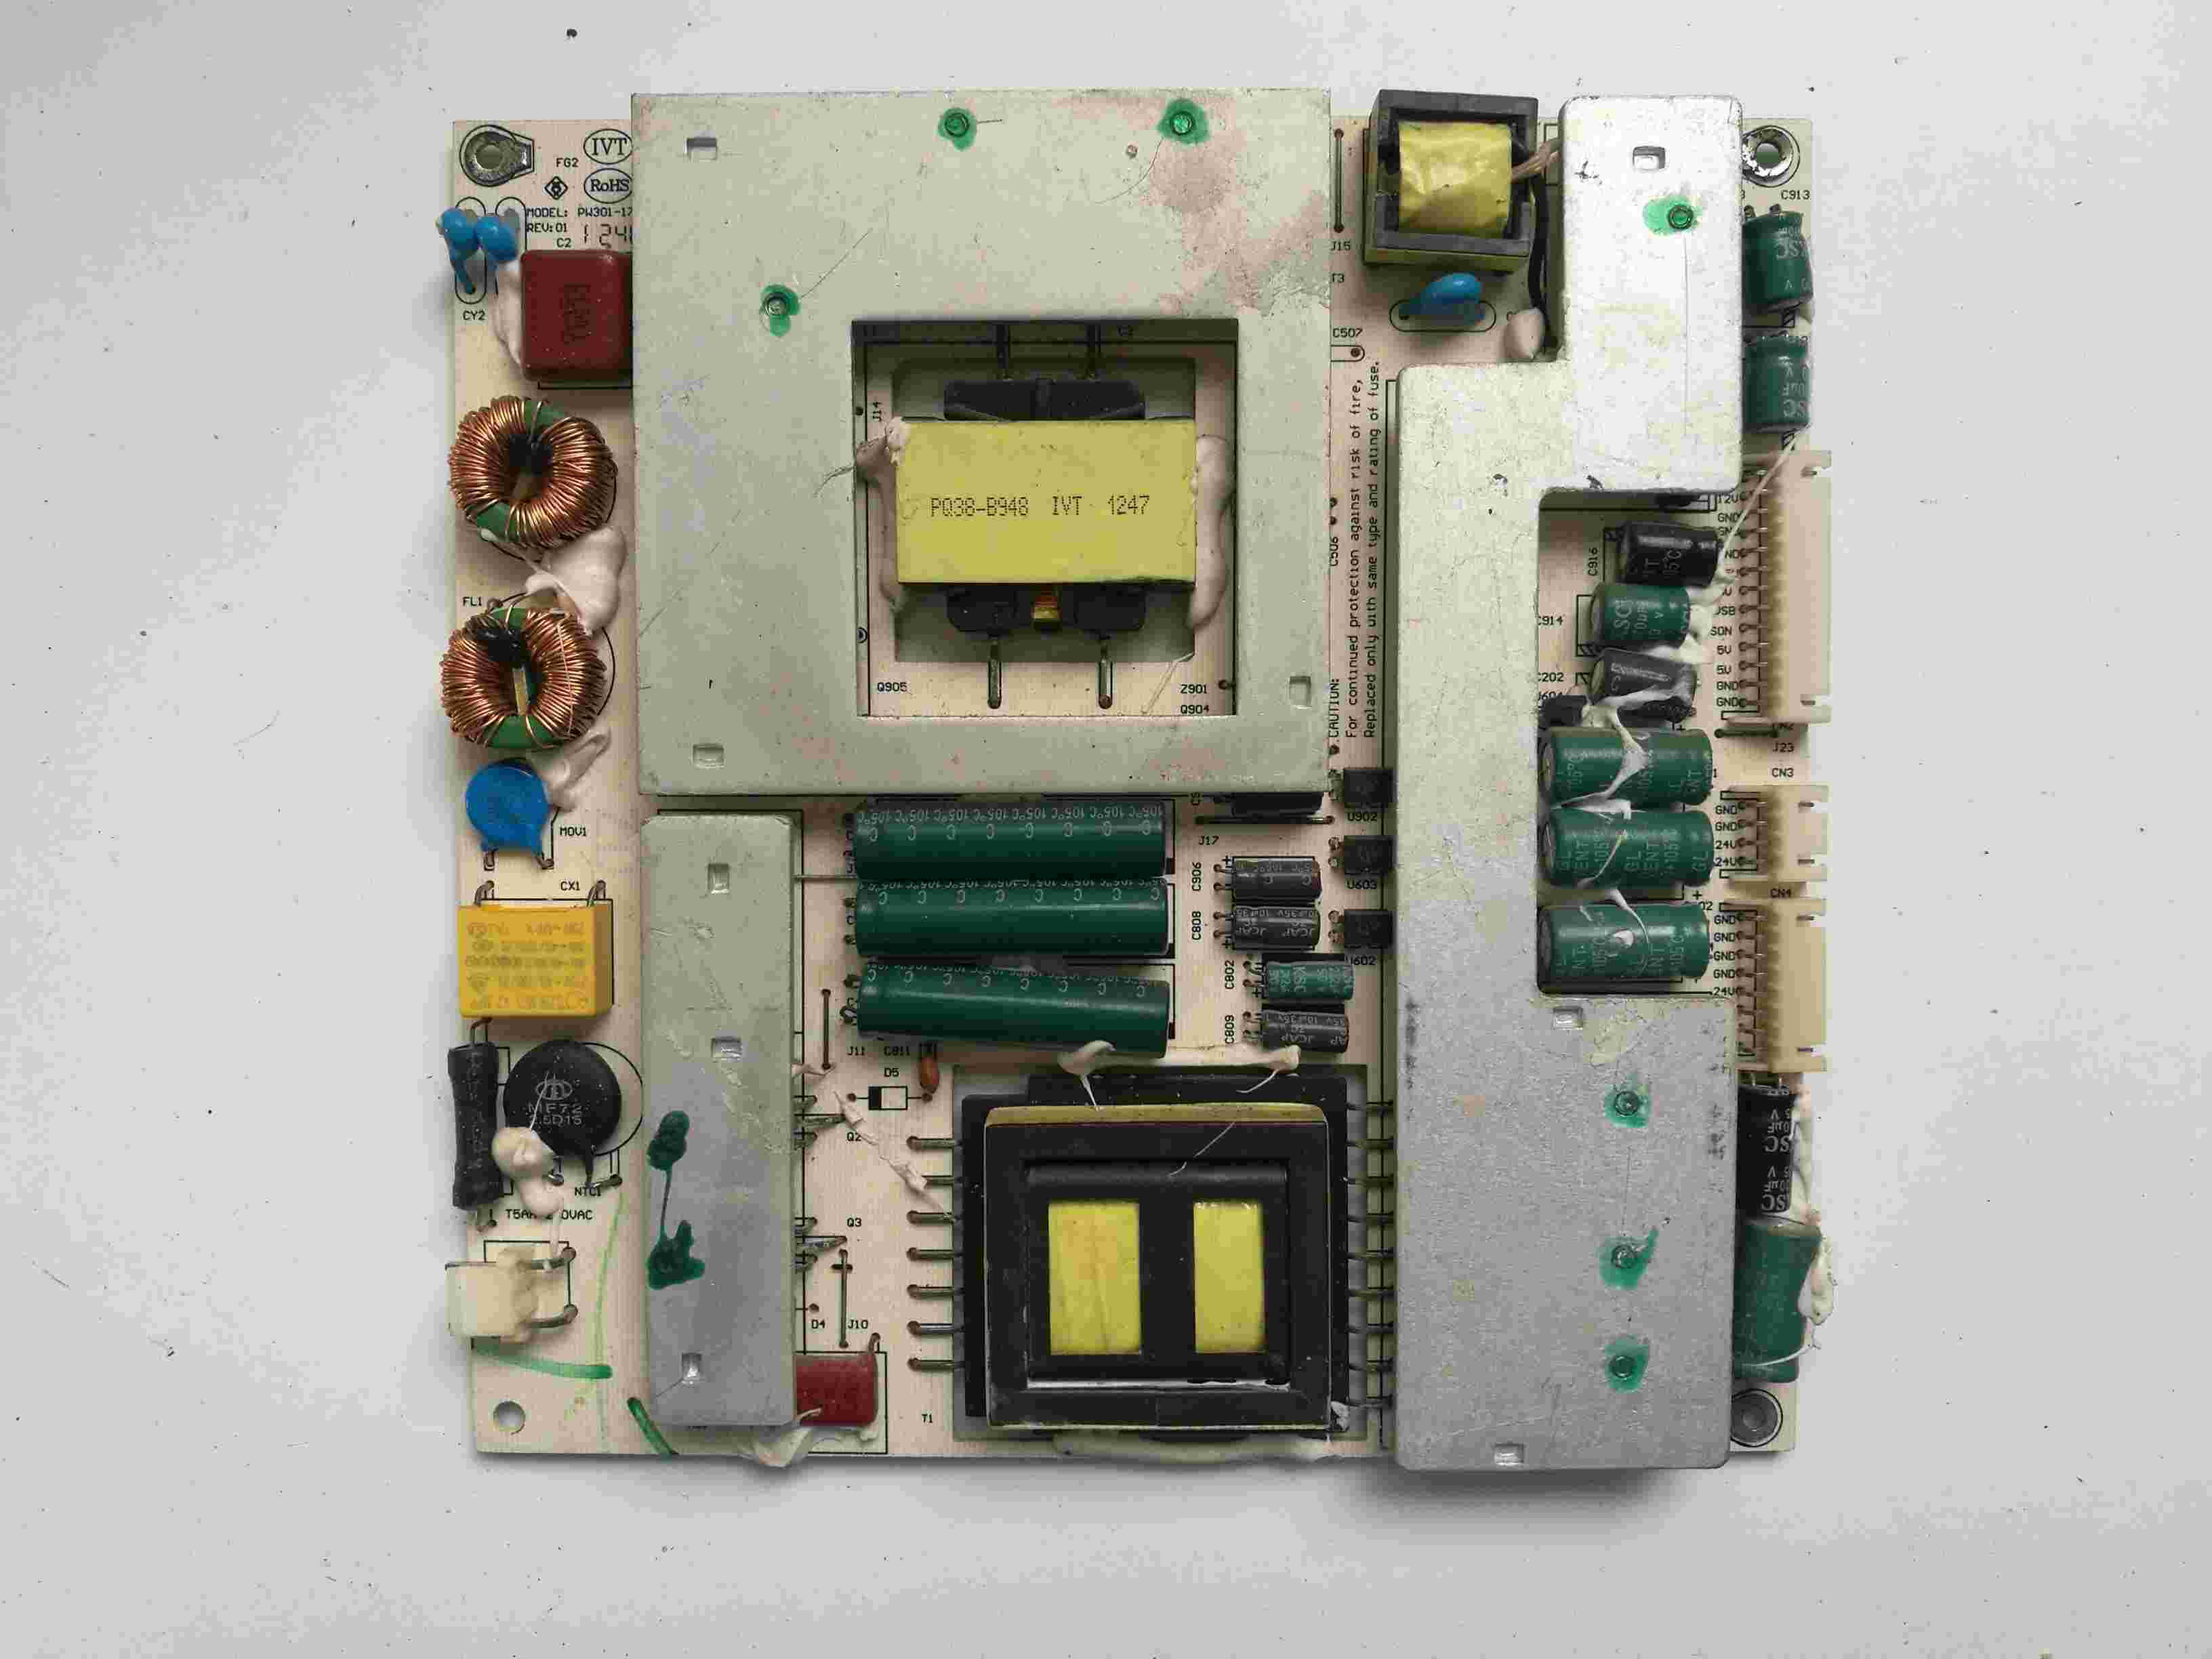 Main Board Power Board Circuit Logic Board Constant Current Board Led 50x1200af Motherboard 35019688 With 542yt Screen Circuits